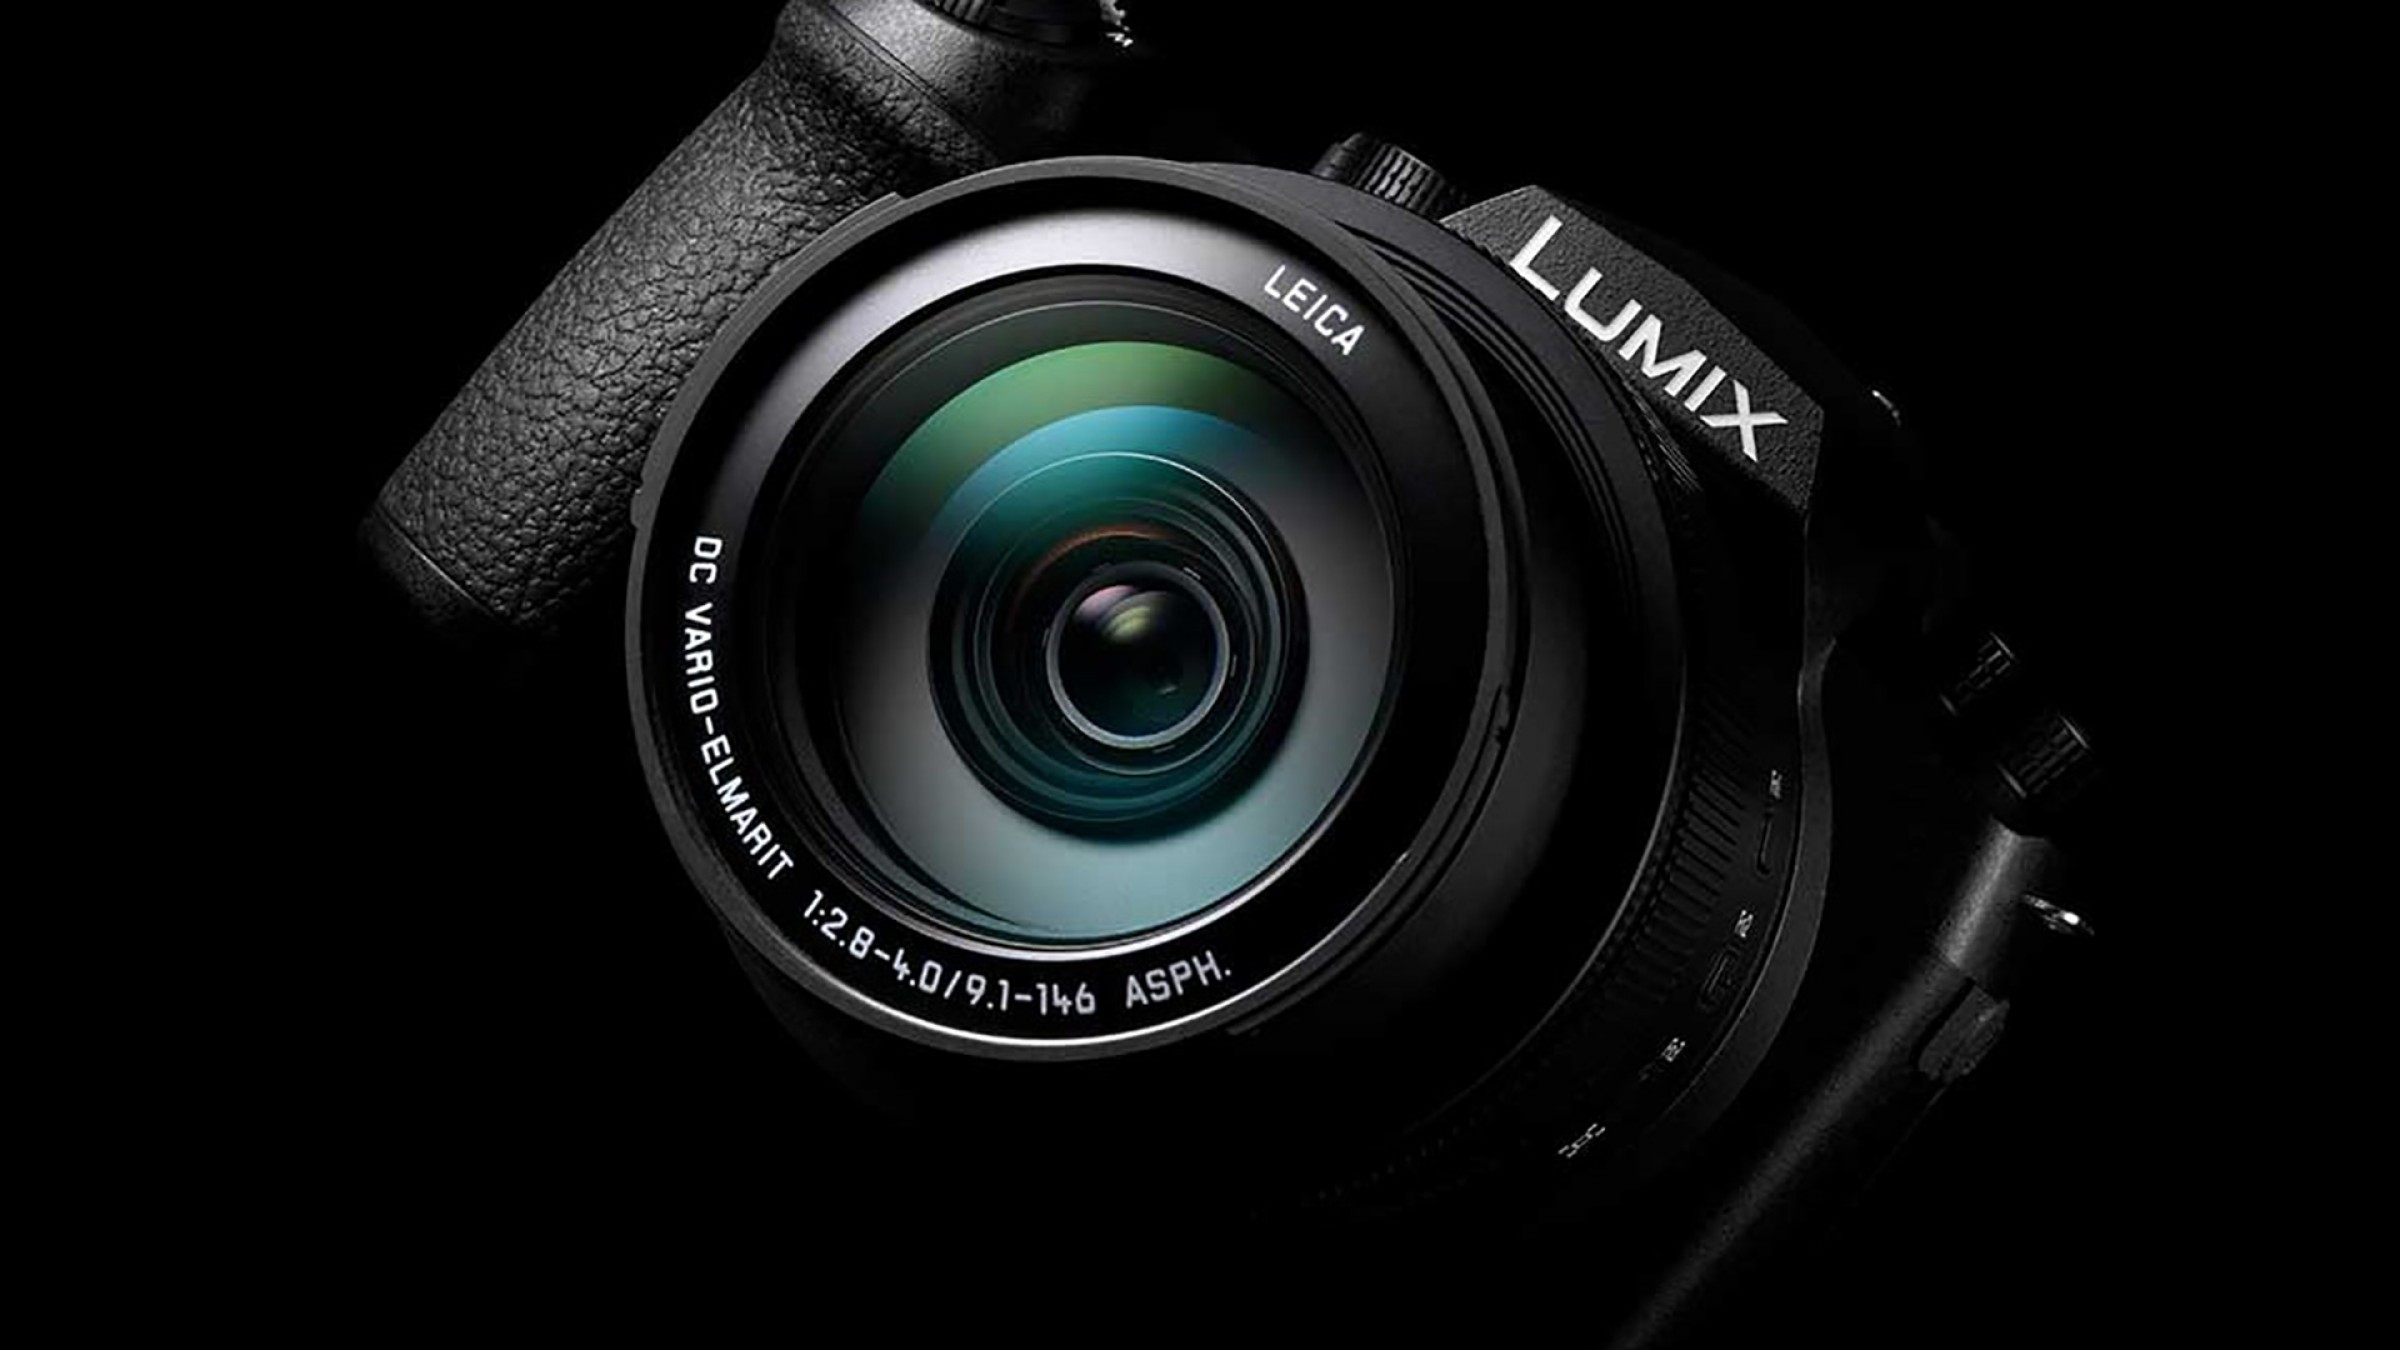 Panasonic's New LUMIX FZ1000 II Adds Another 4K Video Under $1,000 Option